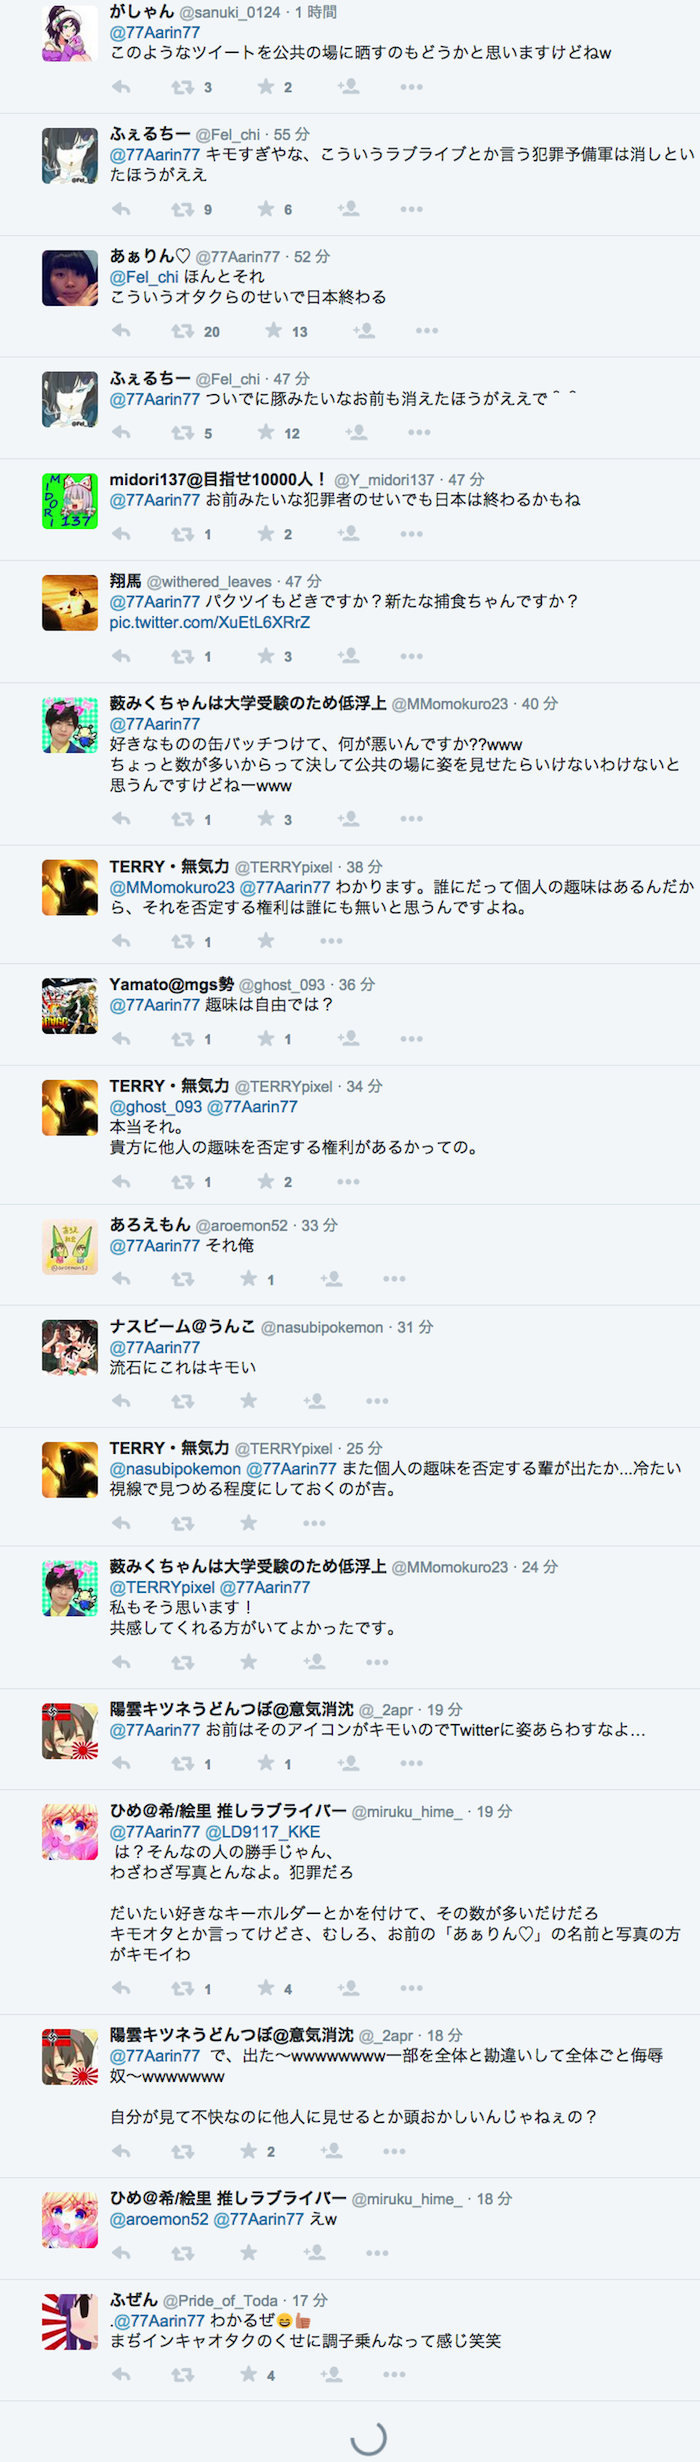 screencapture-twitter-com-77Aarin77-status-593339398013394946-1430307811225